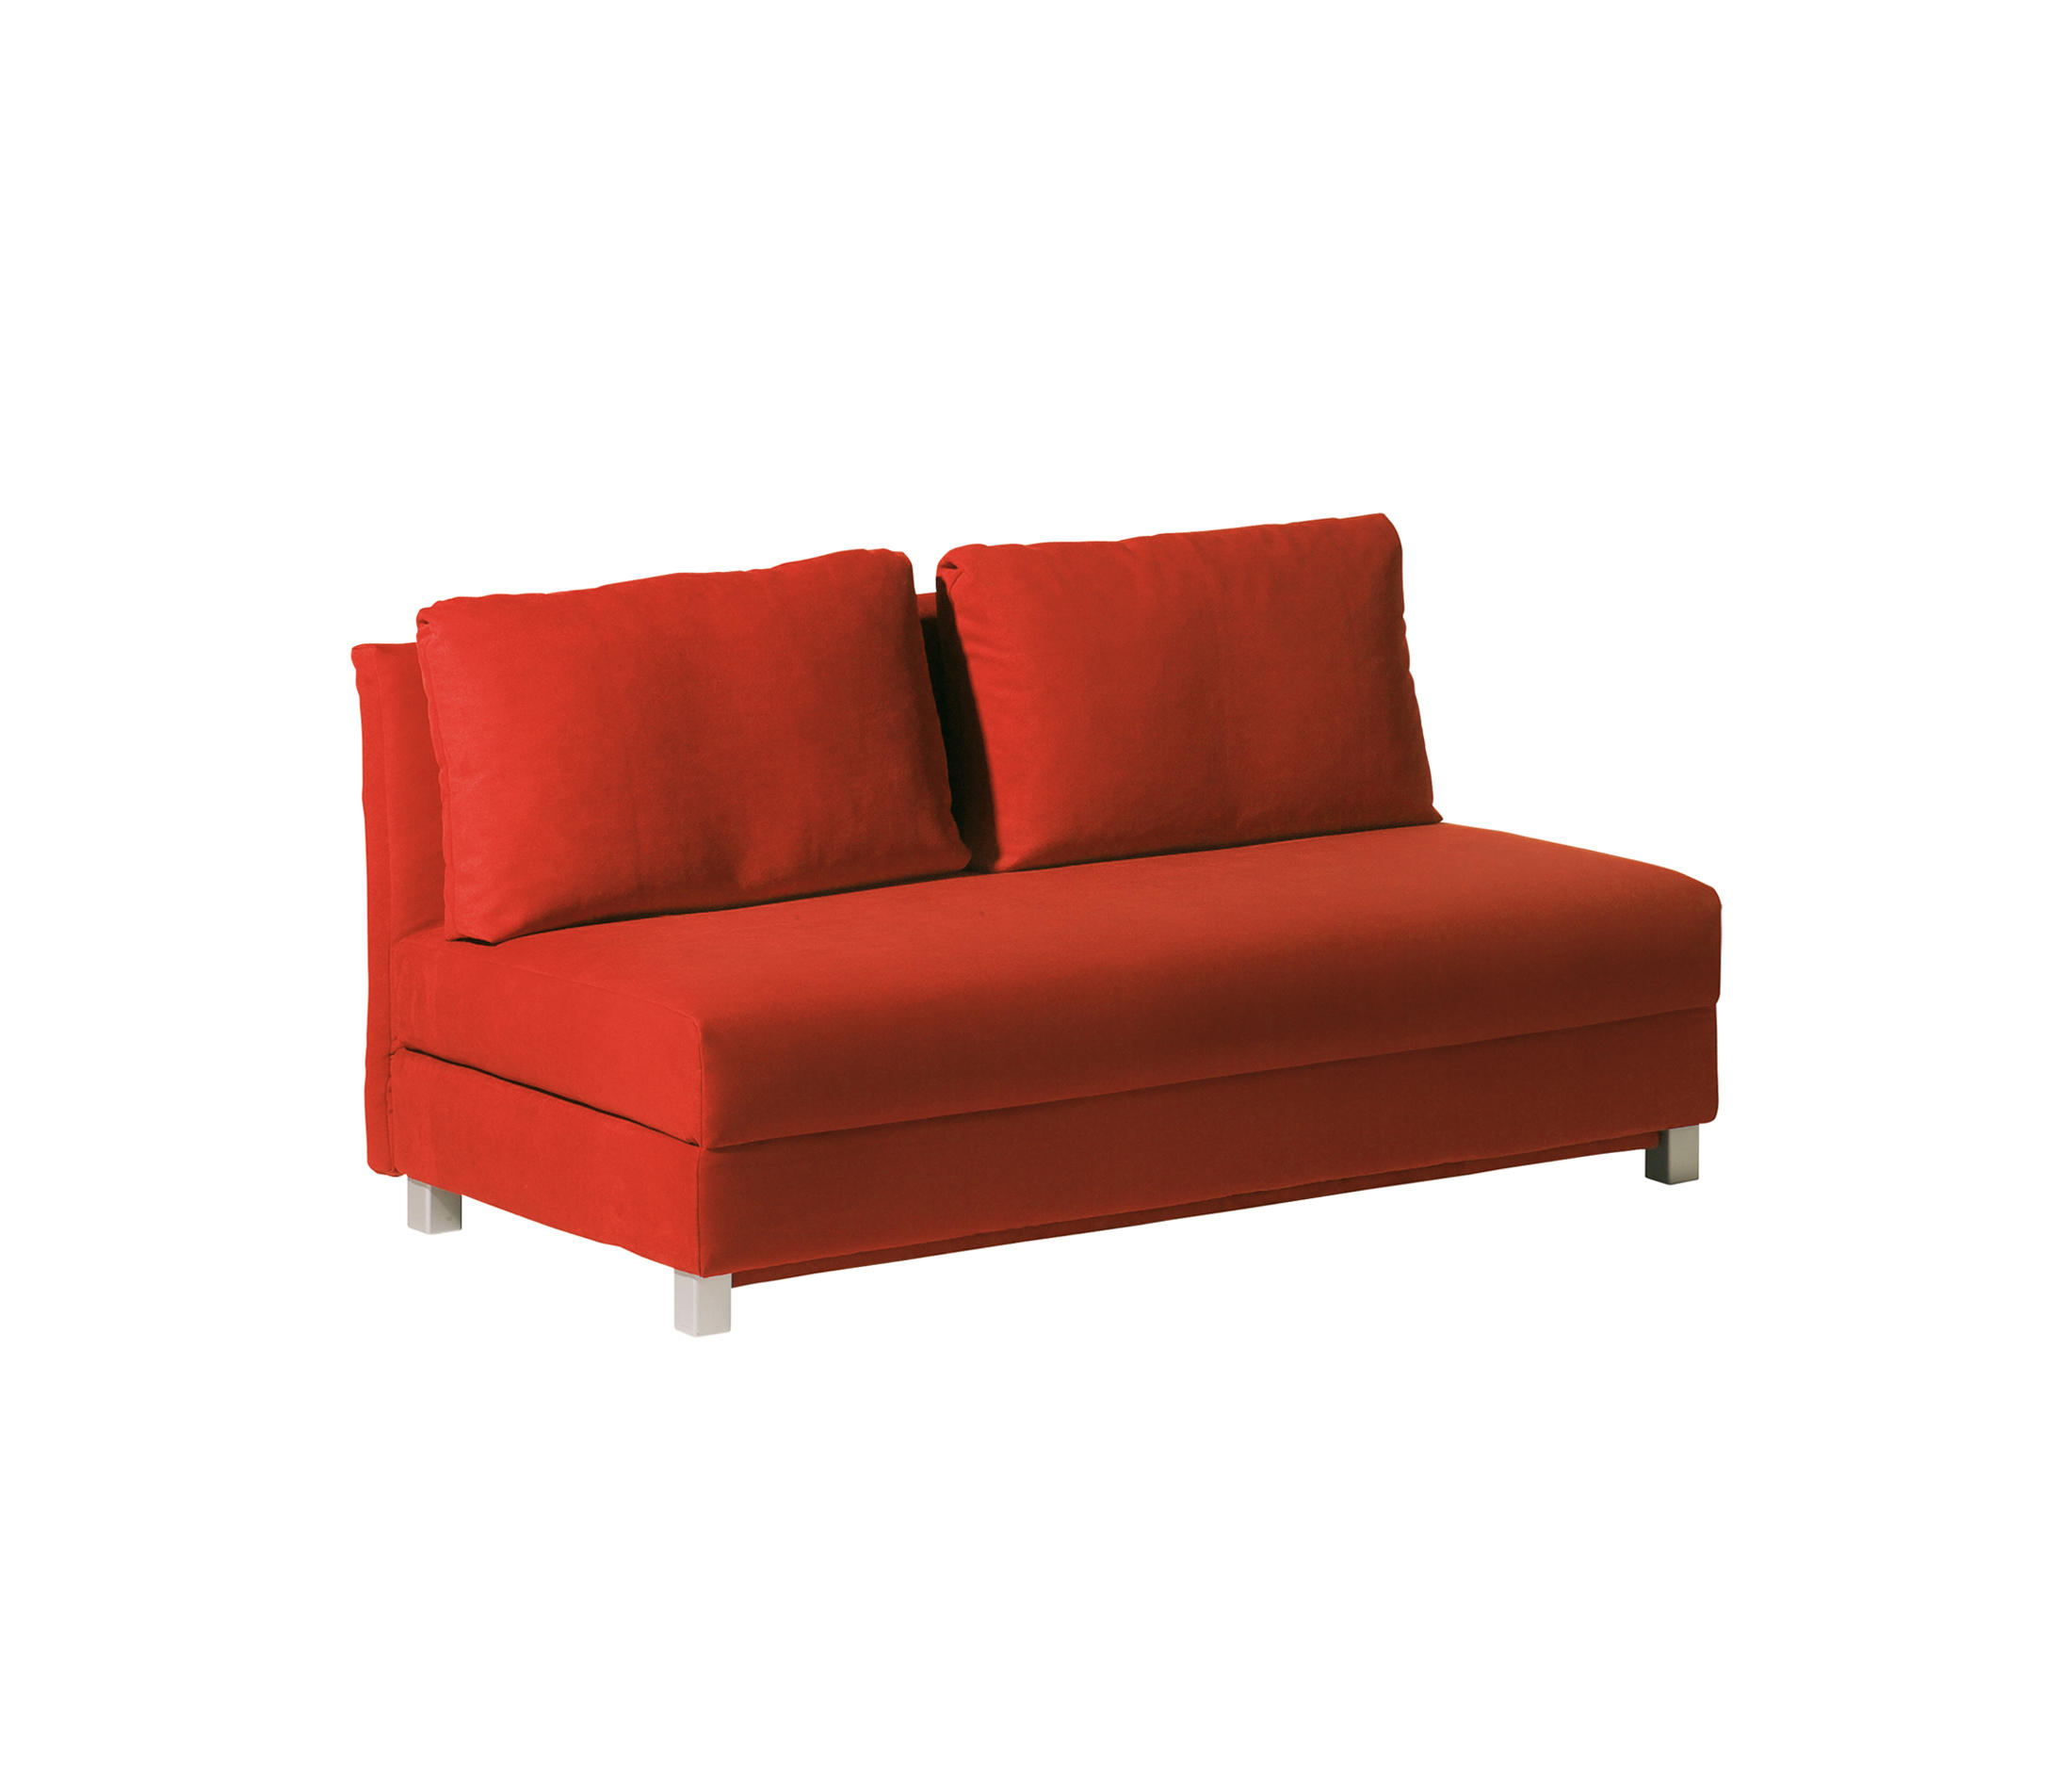 Giorgio sofa bed sofa beds from die collection architonic for Sofa 170 cm breit